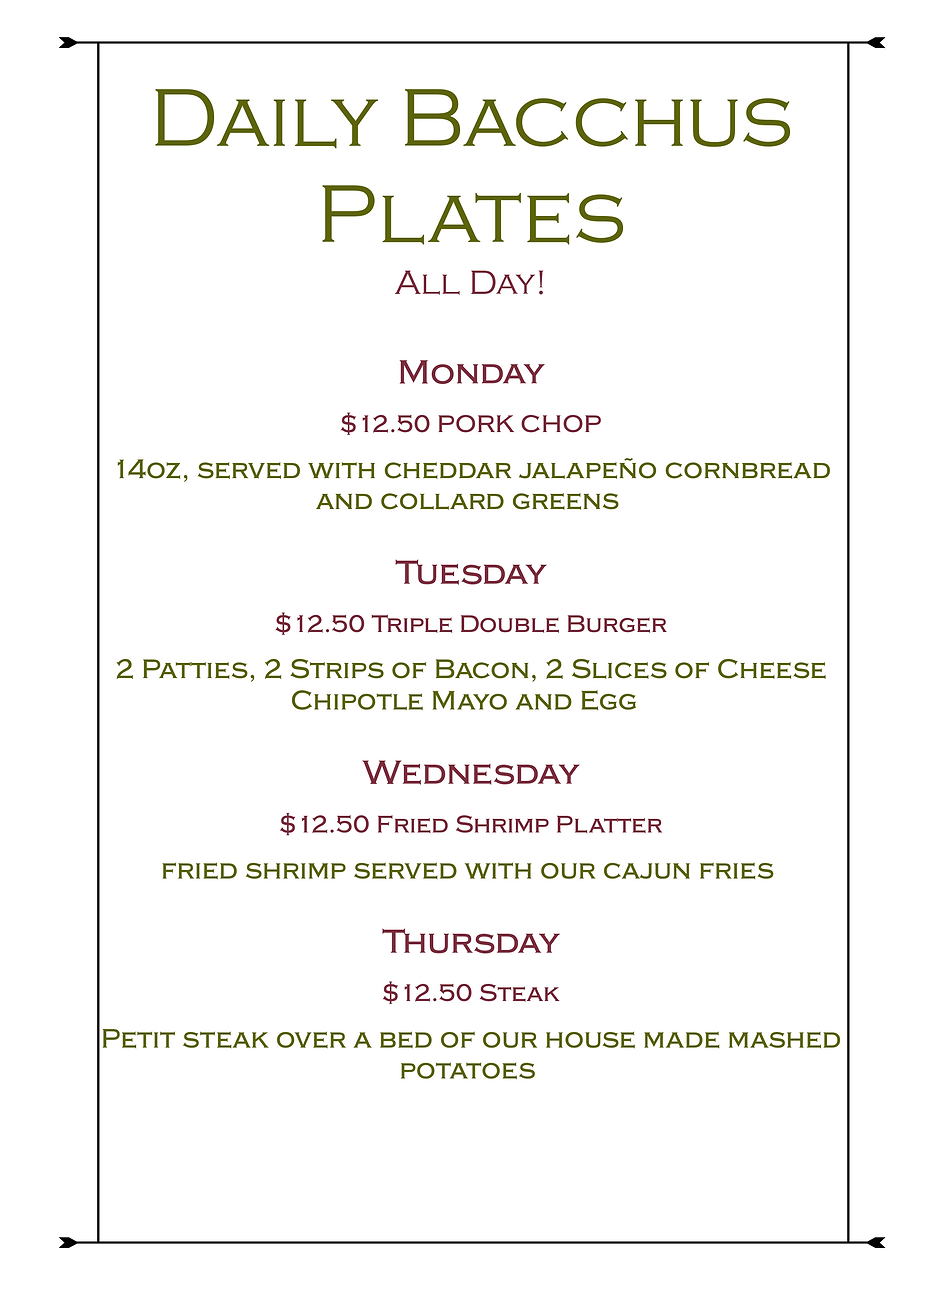 Bacchus_Plate_Specials_4x6_7-3-18_Current.png